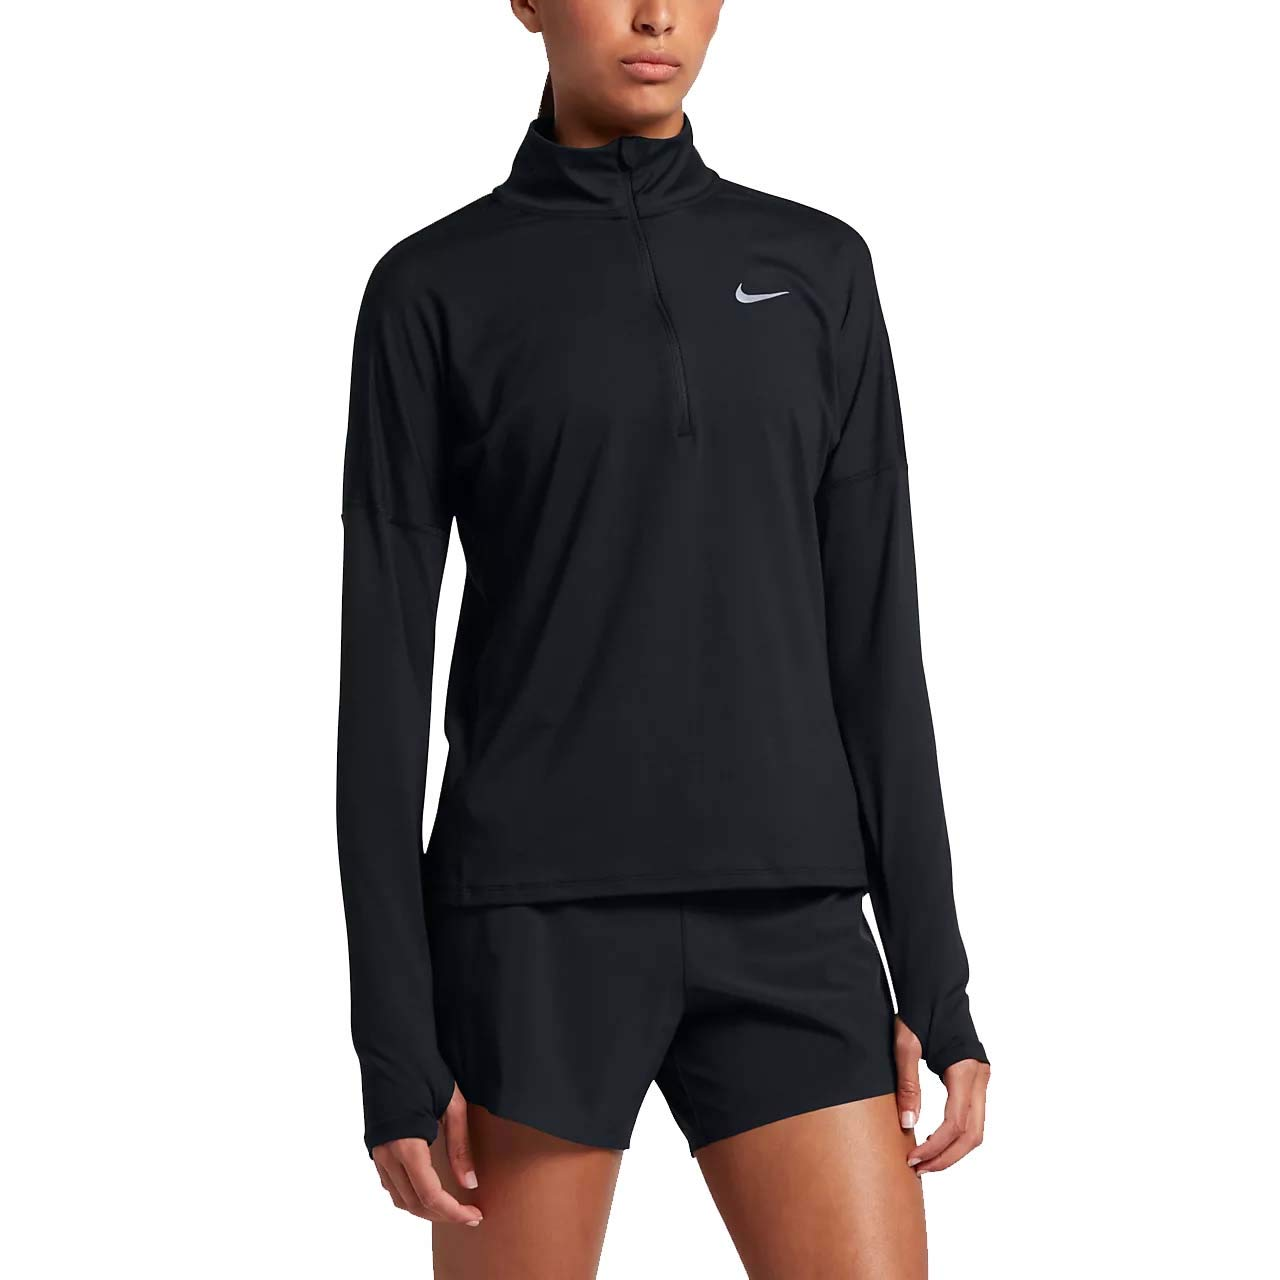 Nike Women's Dri-Fit Element Long Sleeve Running Top (X-Large, Black) by Nike